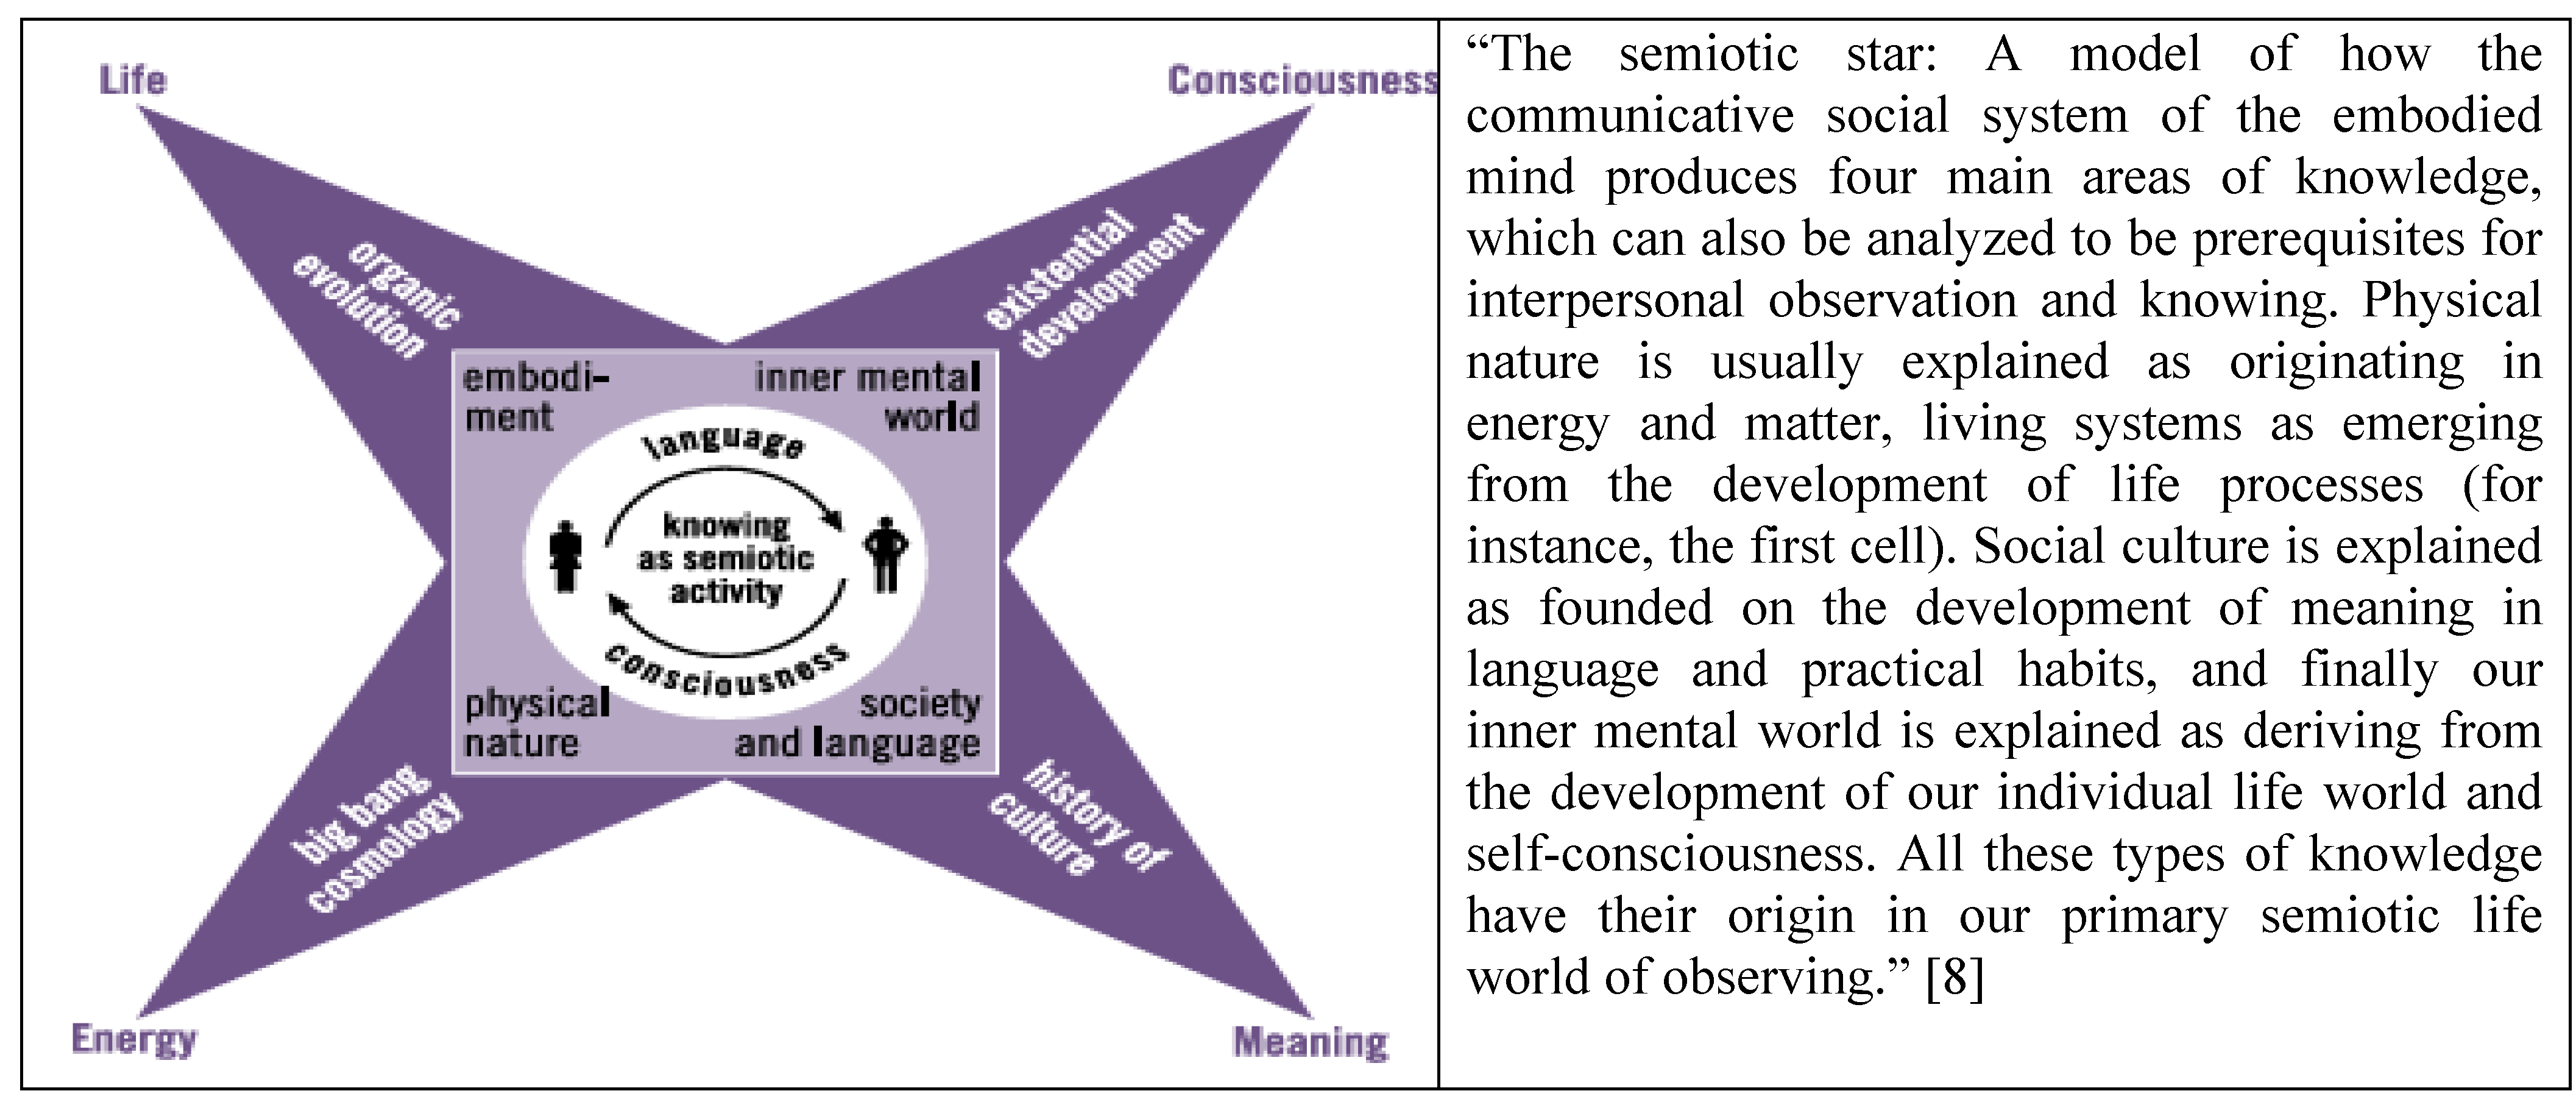 jakobsons functions of language In this section, we will learn about the five functions of language, which show us that language is expressive, language is powerful, language is fun, language is dynamic, and language is relational language is expressive.